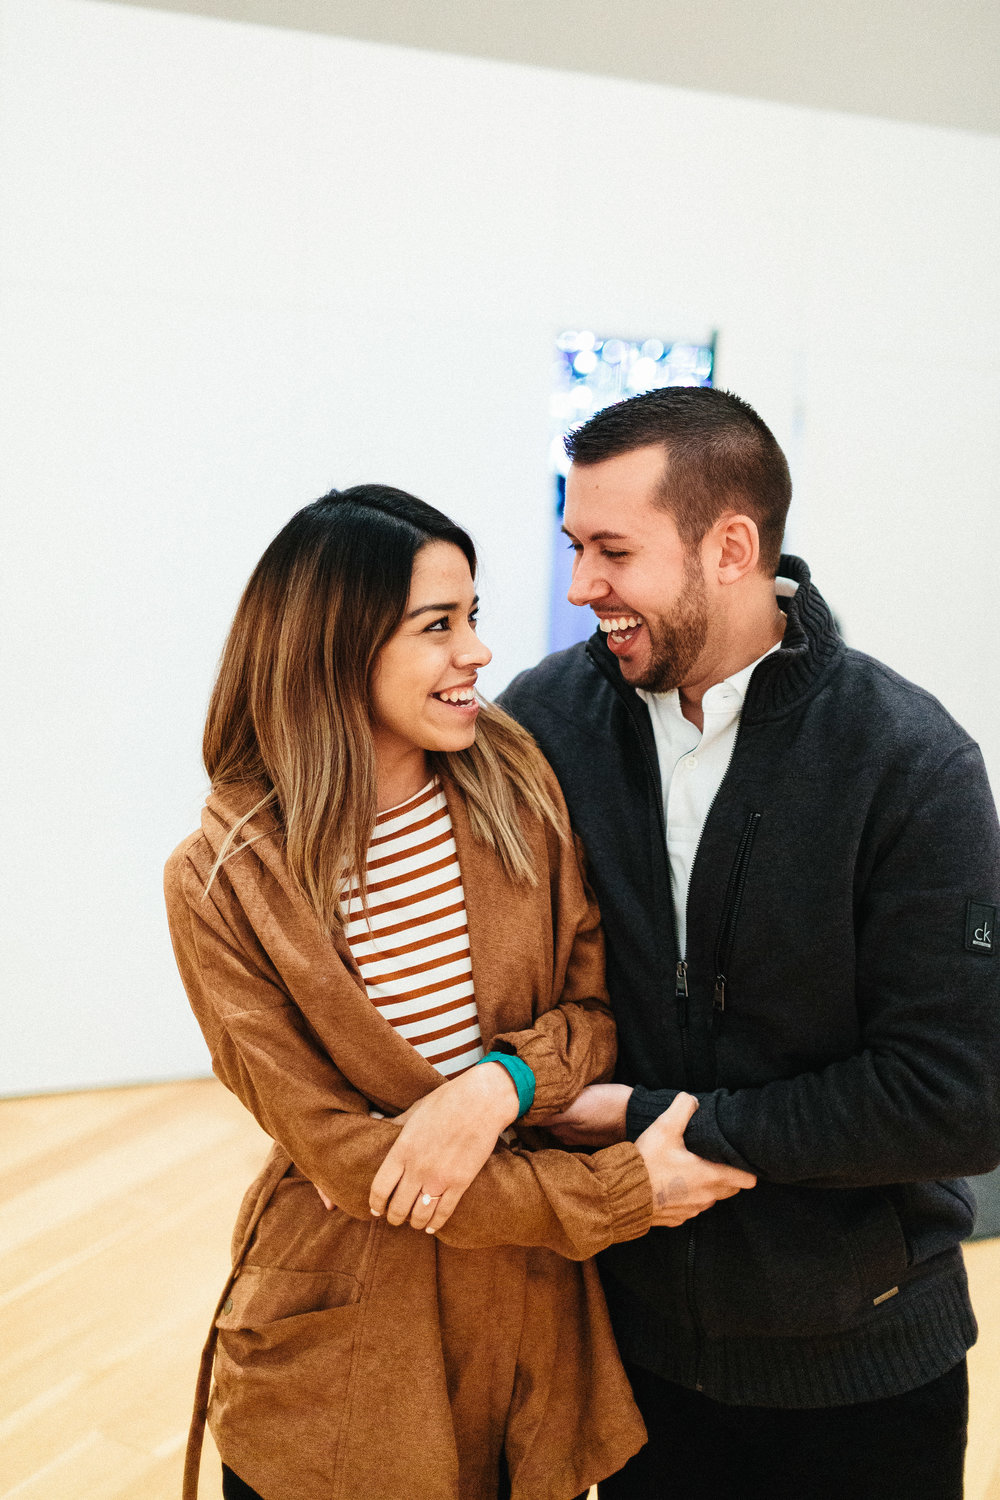 high_museum_infinity_mirrors_Yayoi_Kusama_proposal_amazing_atlanta_real_couple_engagement_ideas_epic_1055.jpg